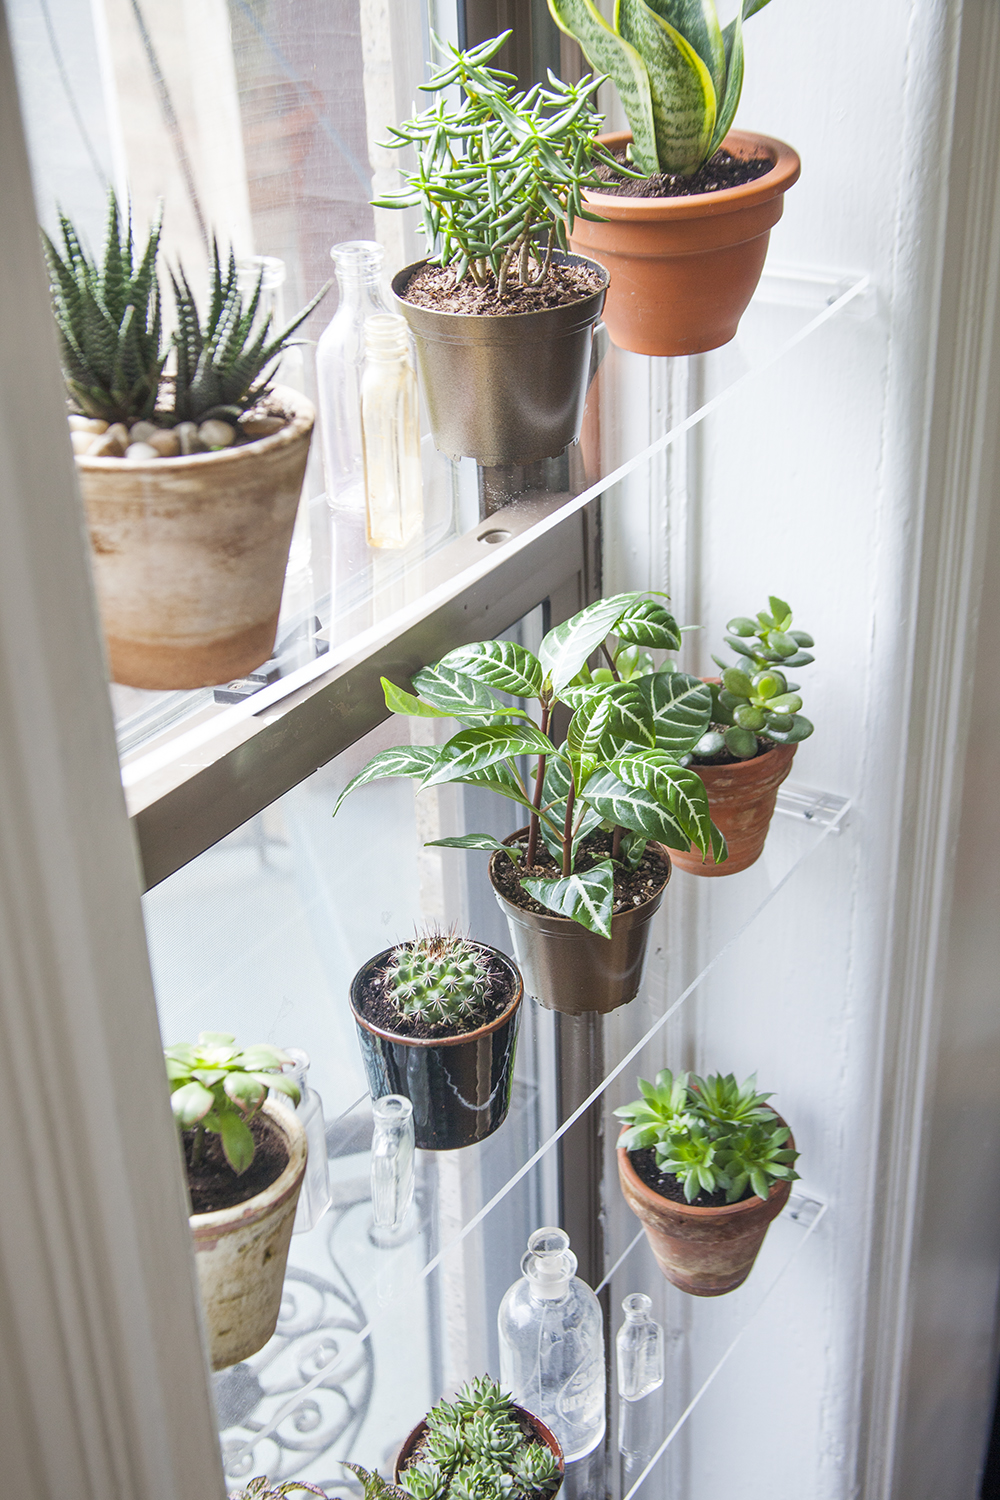 Diy floating window shelves design sponge - How to hang plants in front of windows ...